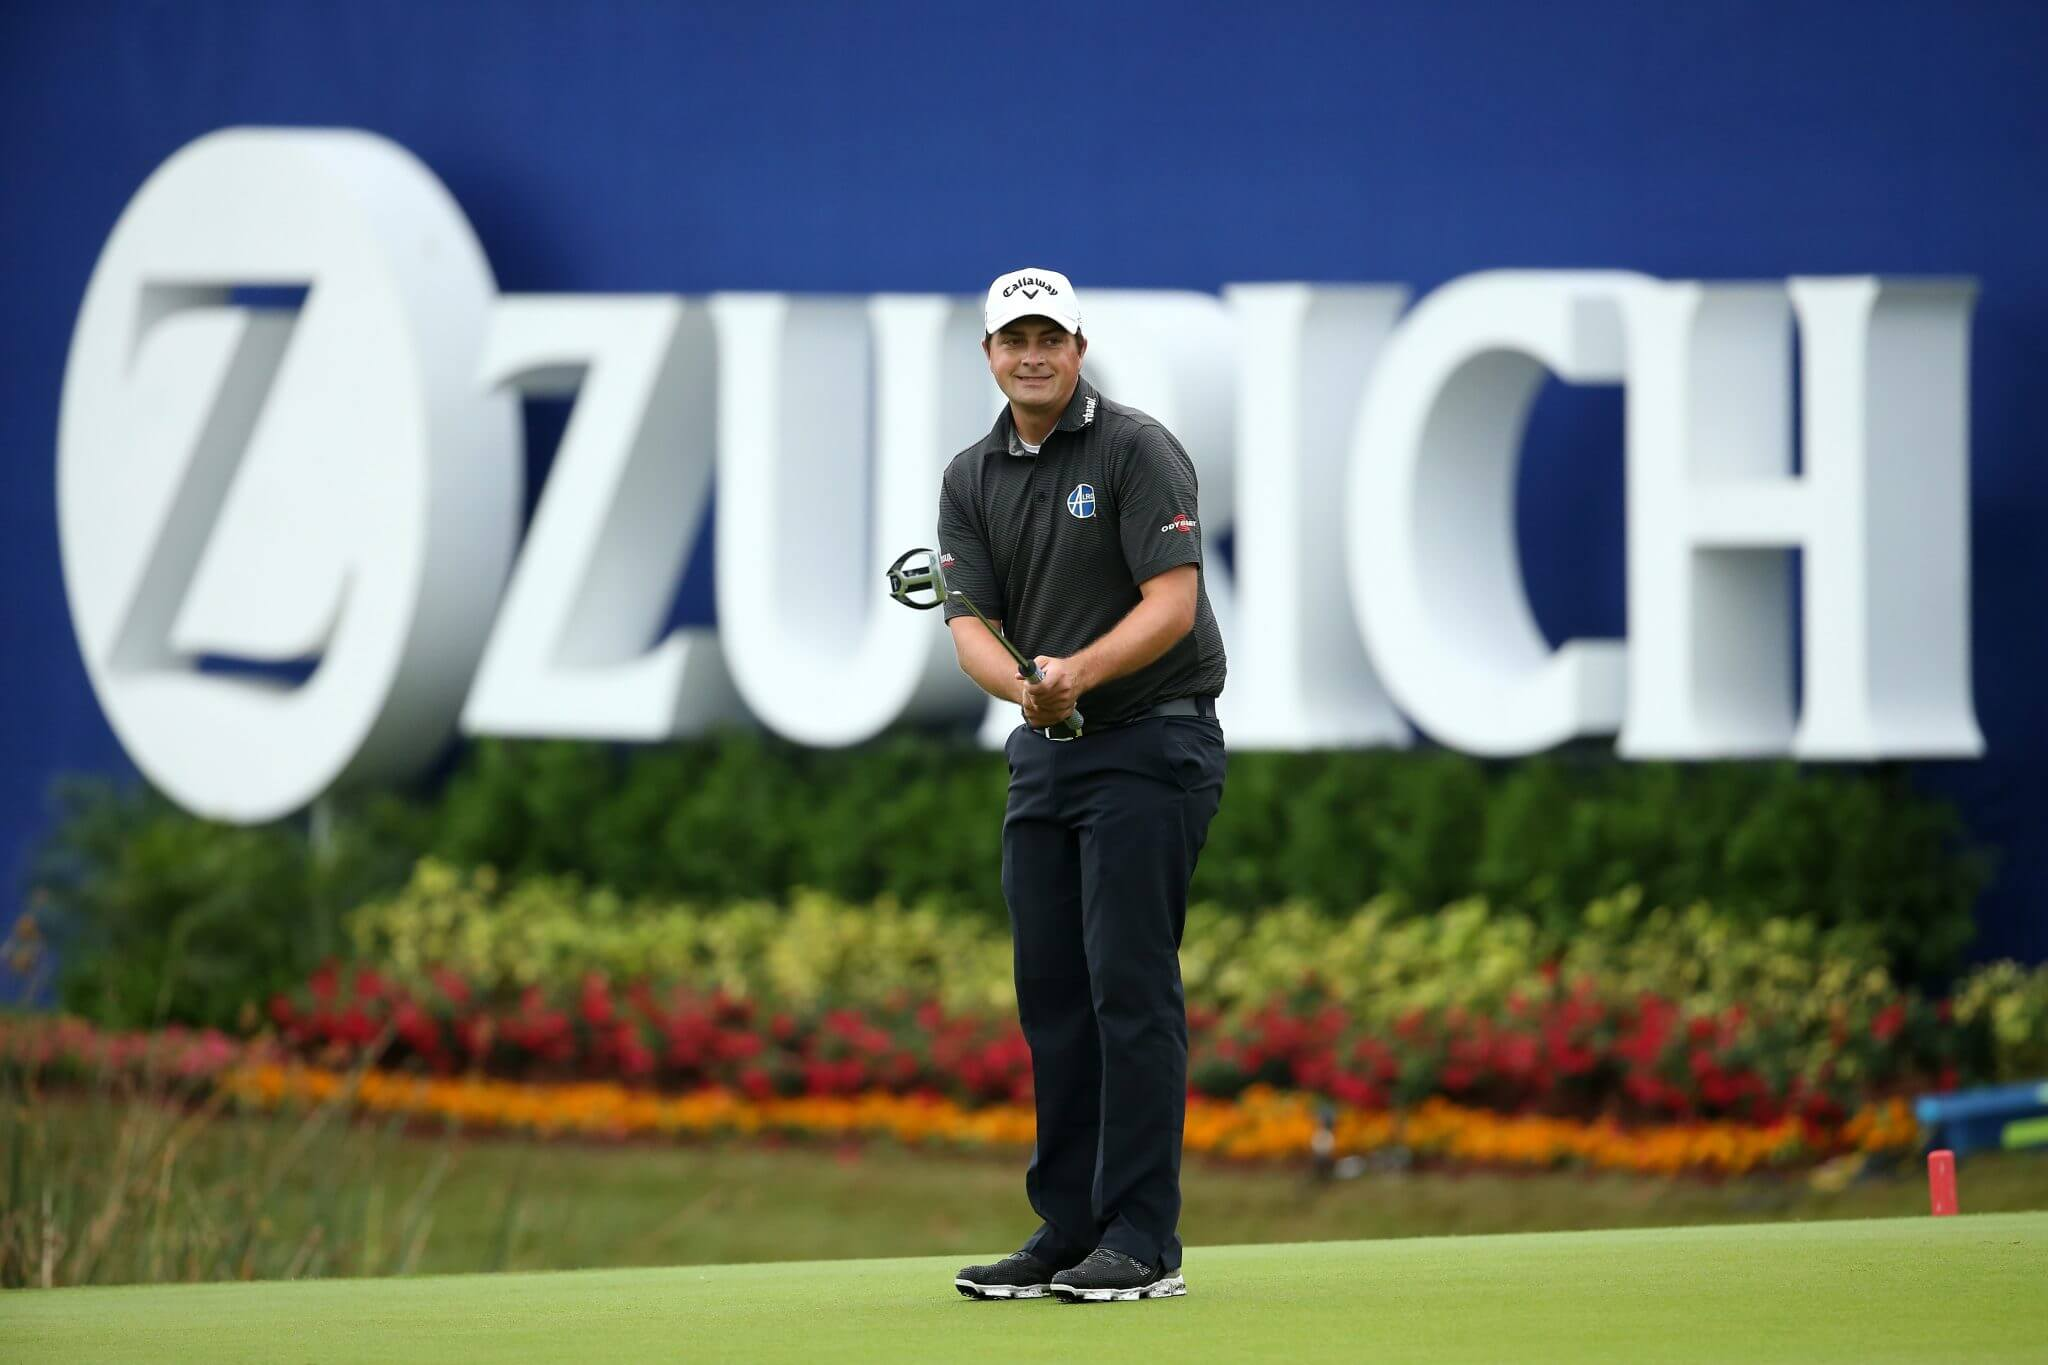 Brian Stuard wins at Zurich Classic of New Orleans